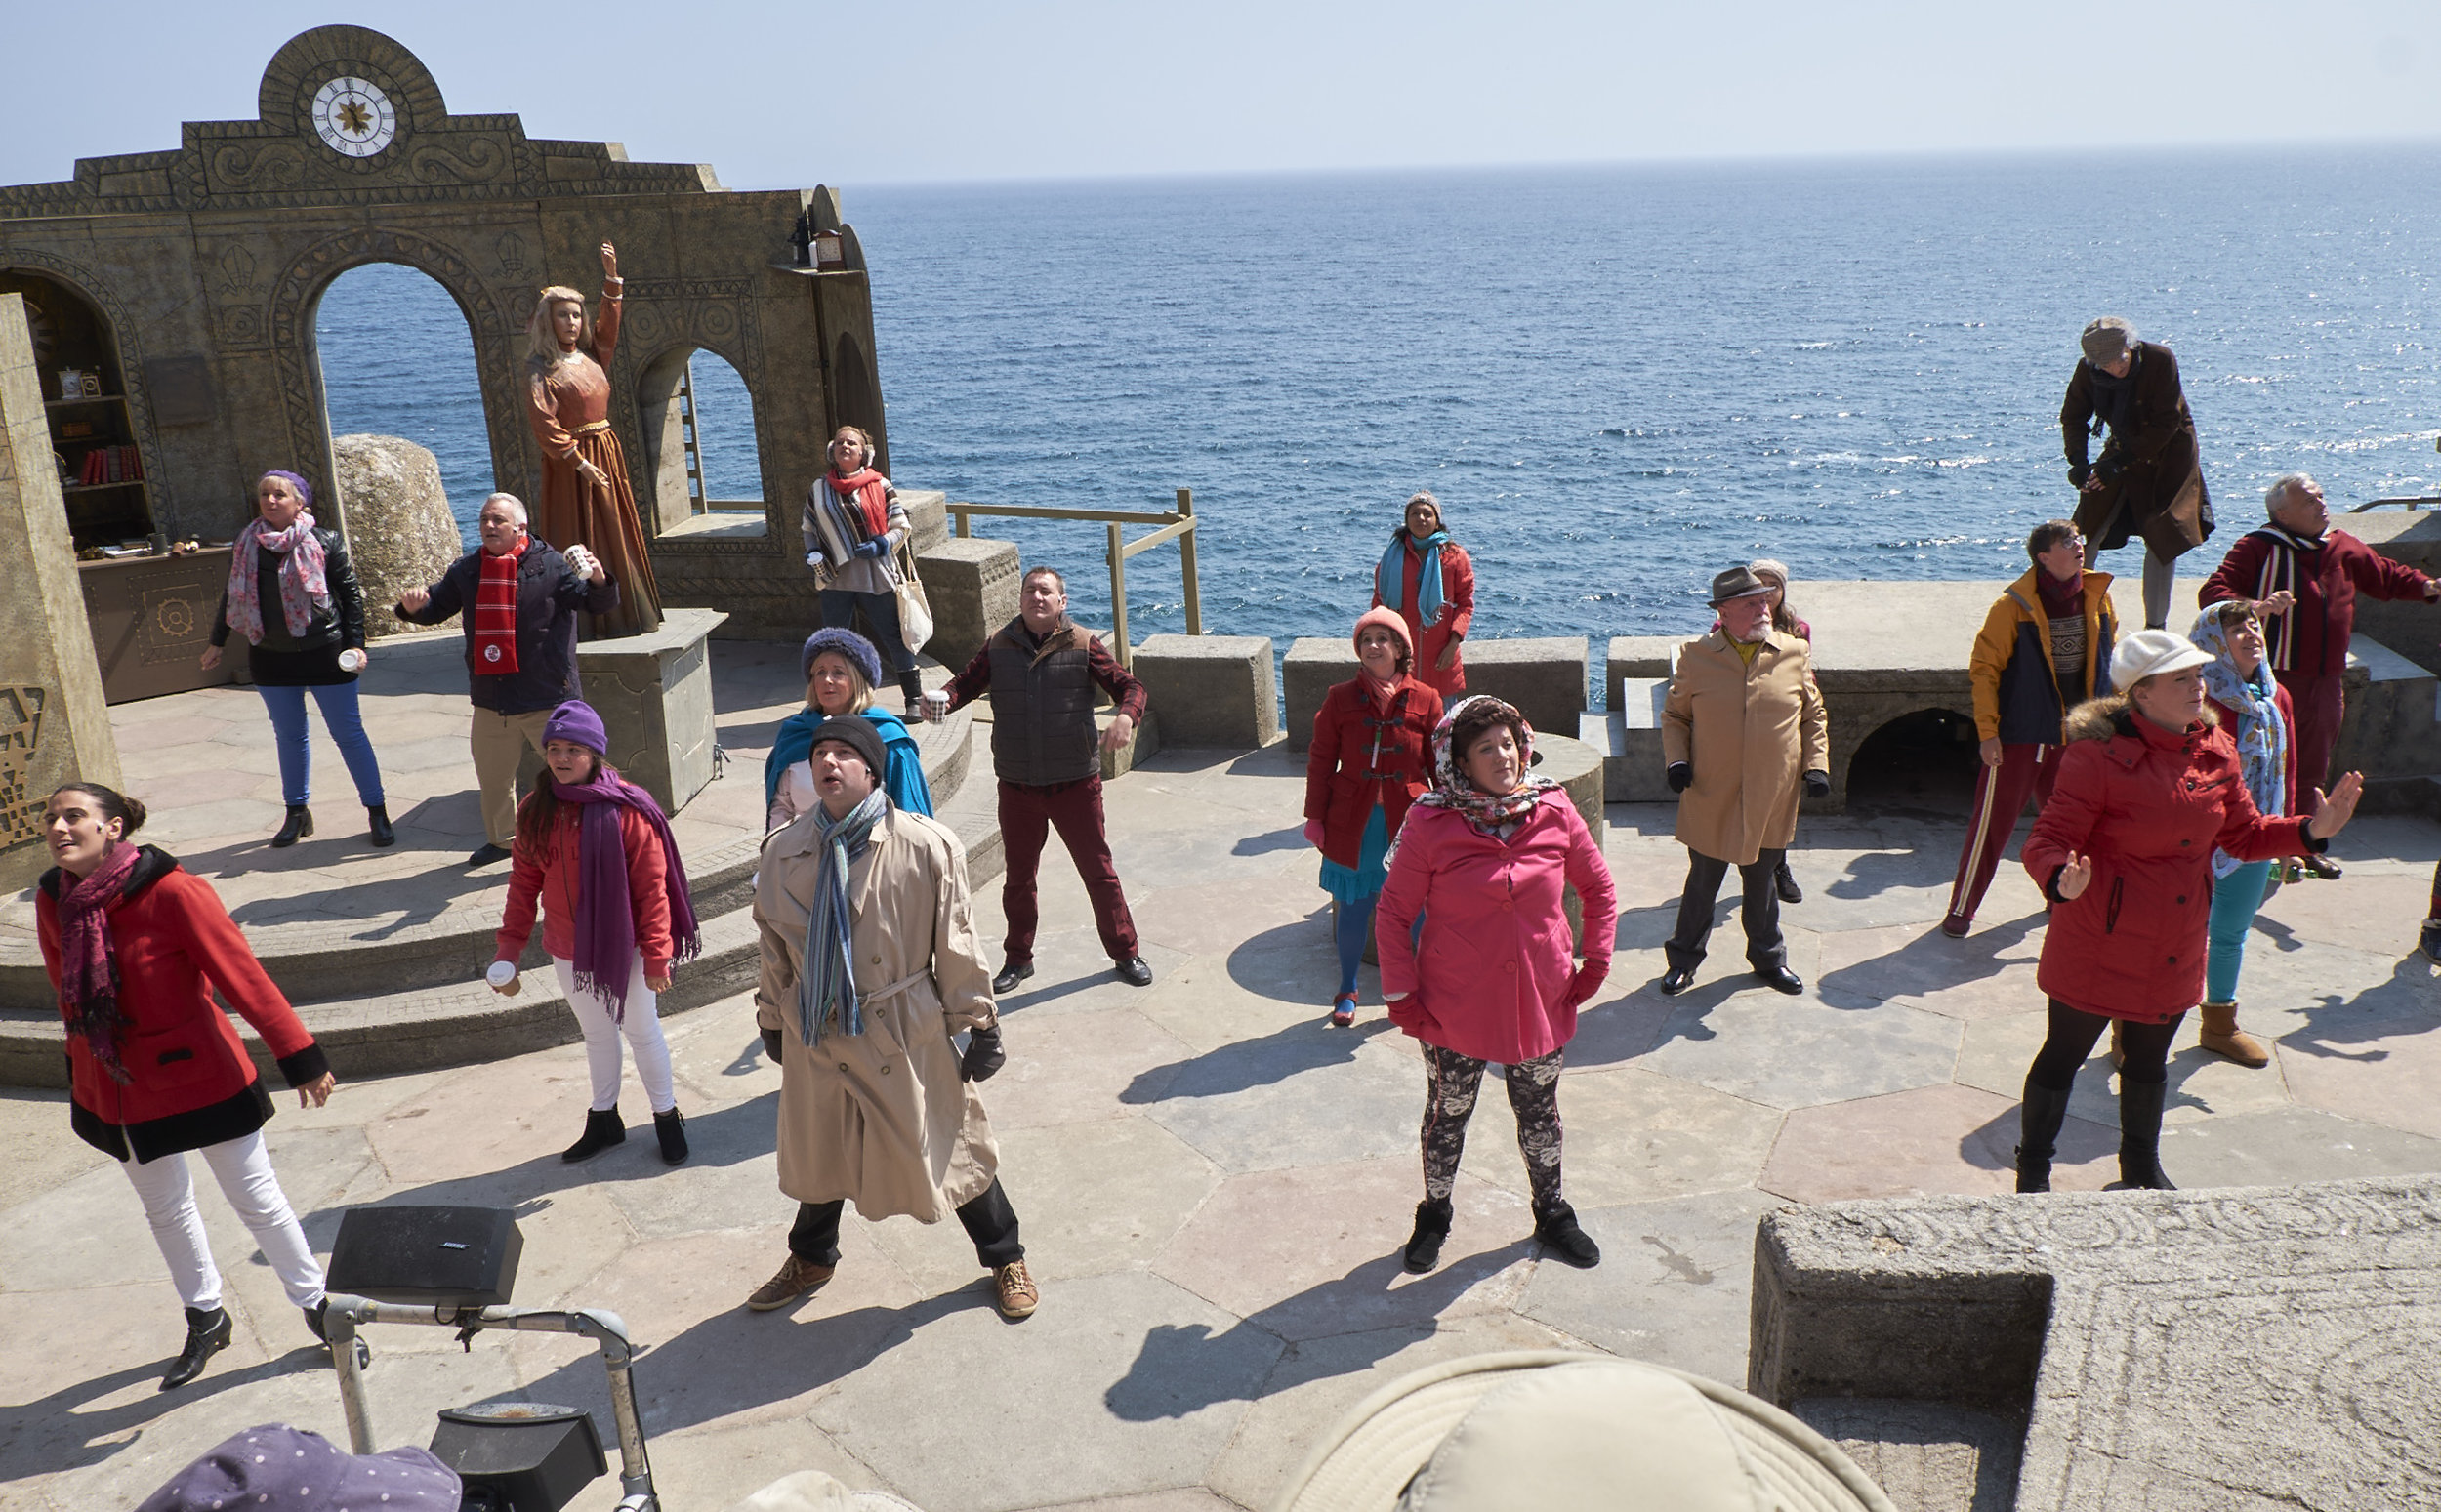 The Clockmaker's Daughter at the Minack. Great setting for a theatre.